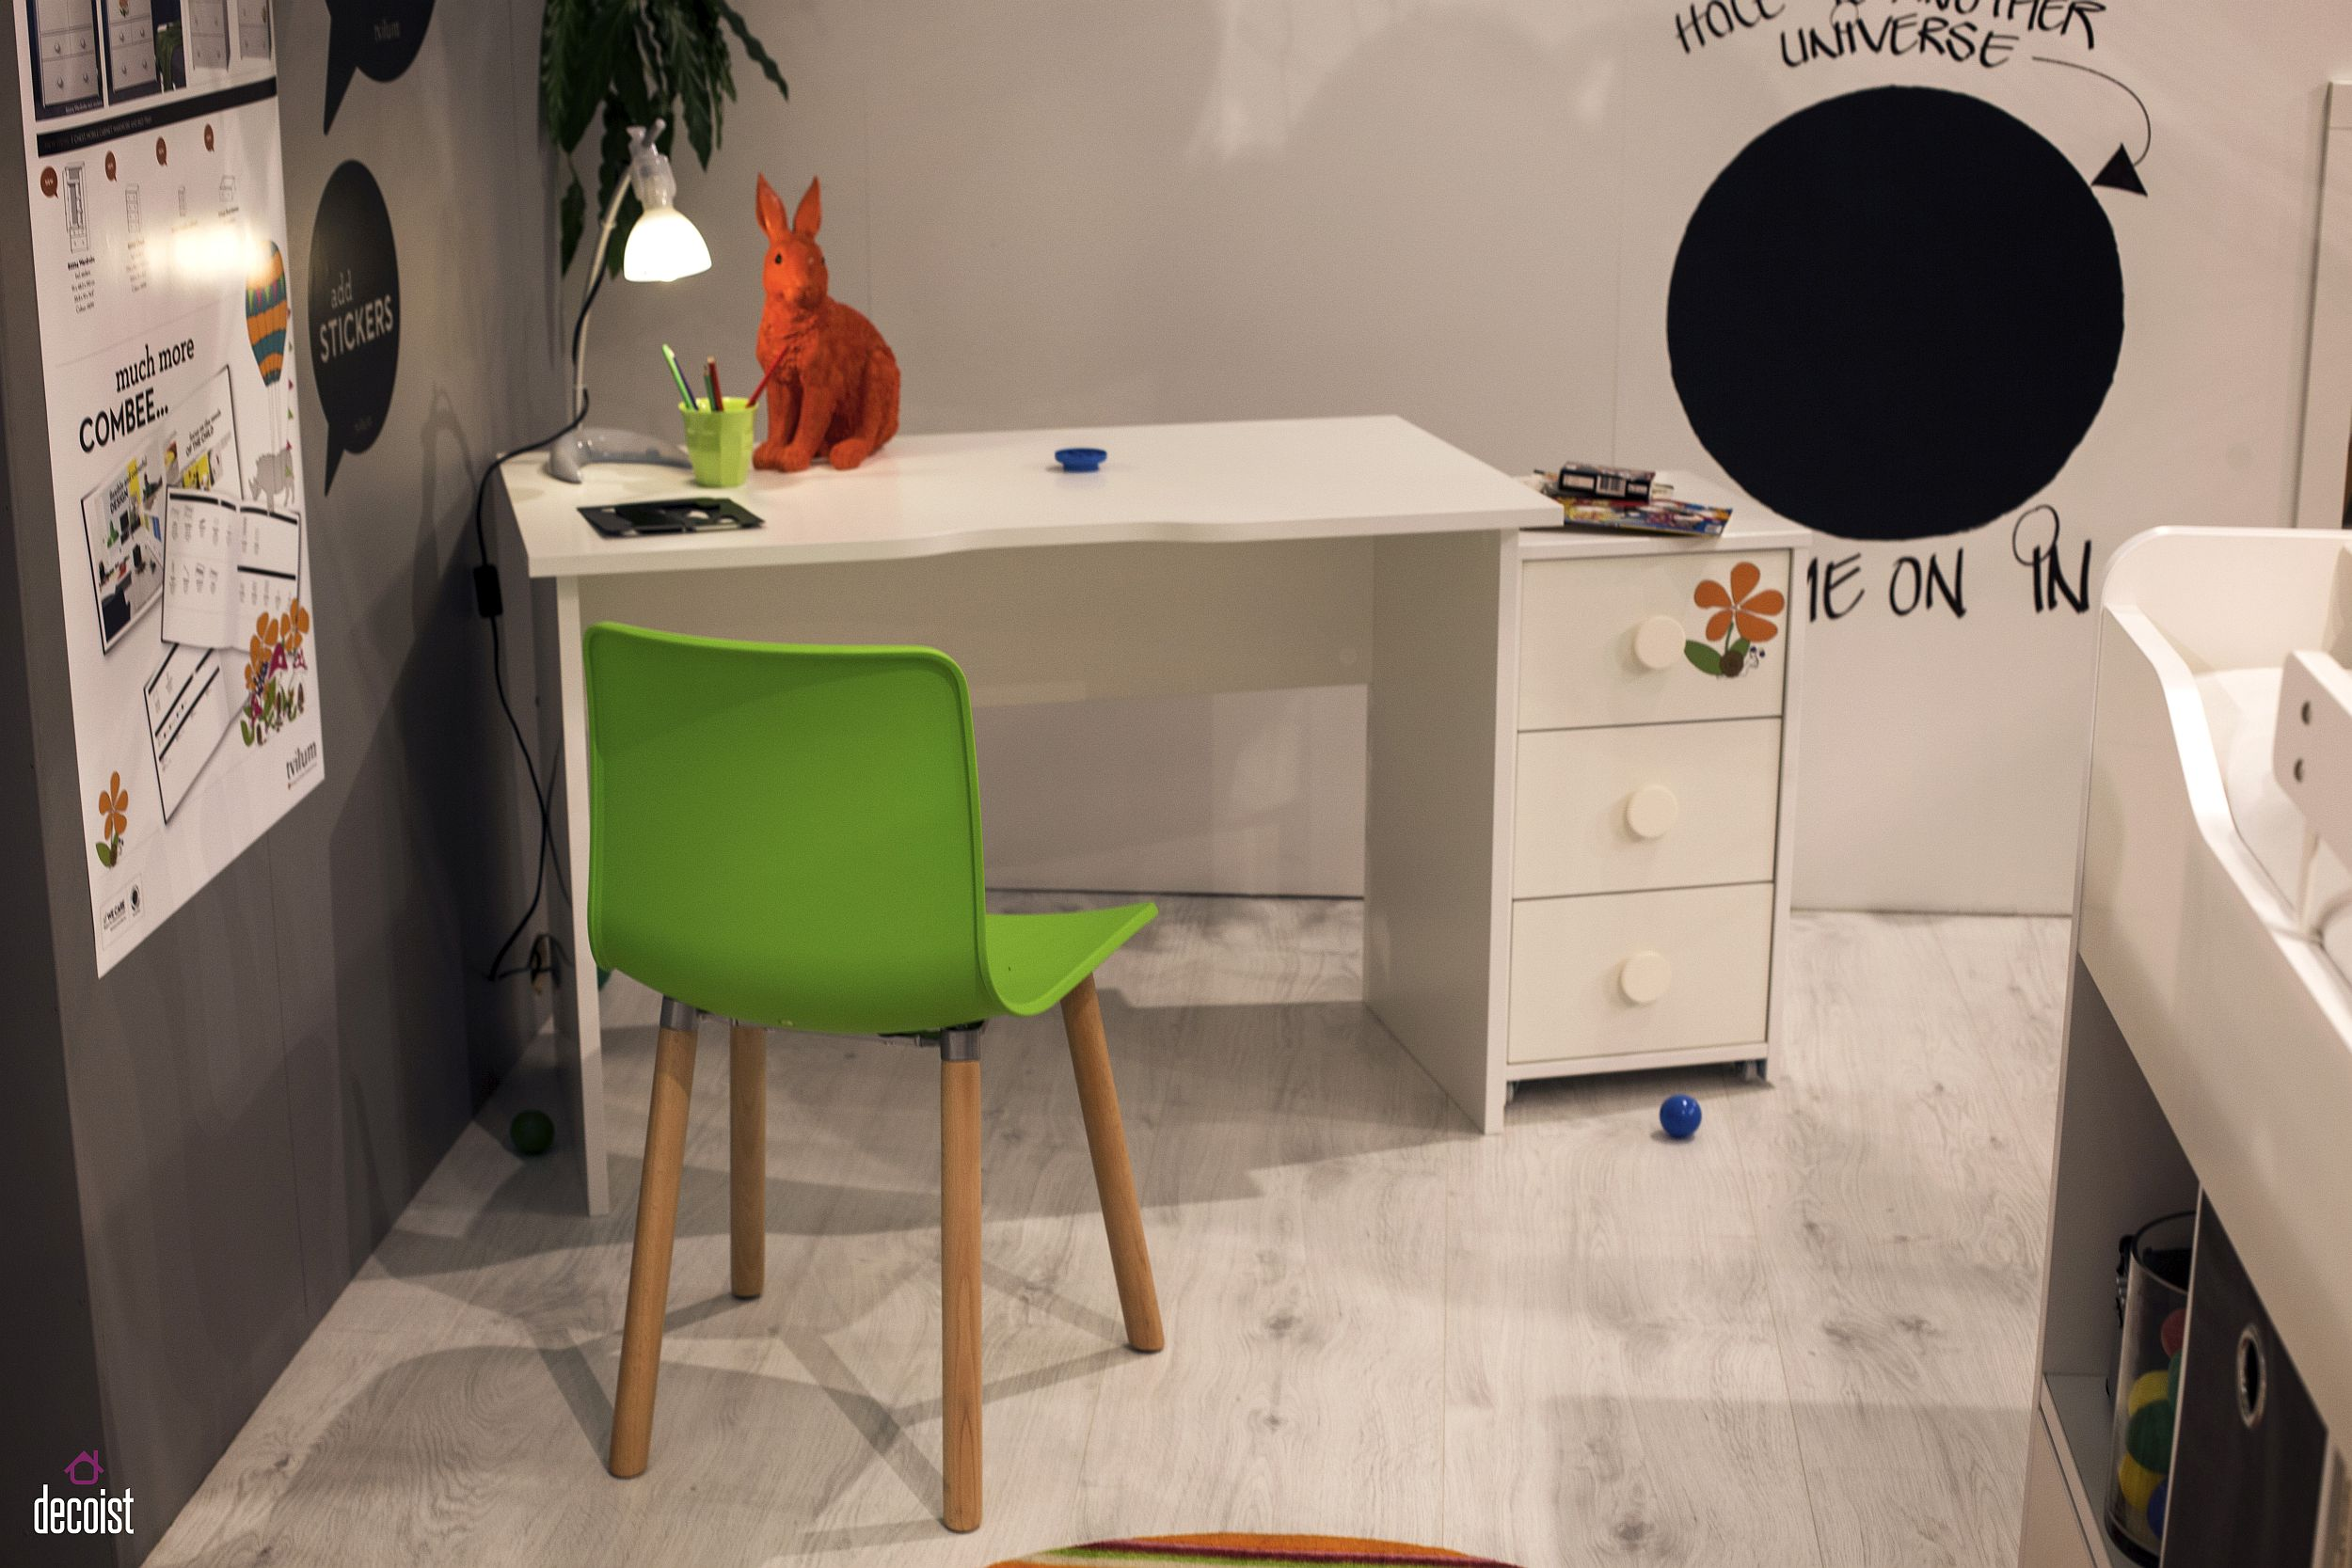 Minimal homeowrk station for the kids' room in the corner with a colorful chair in green and a small cabinet